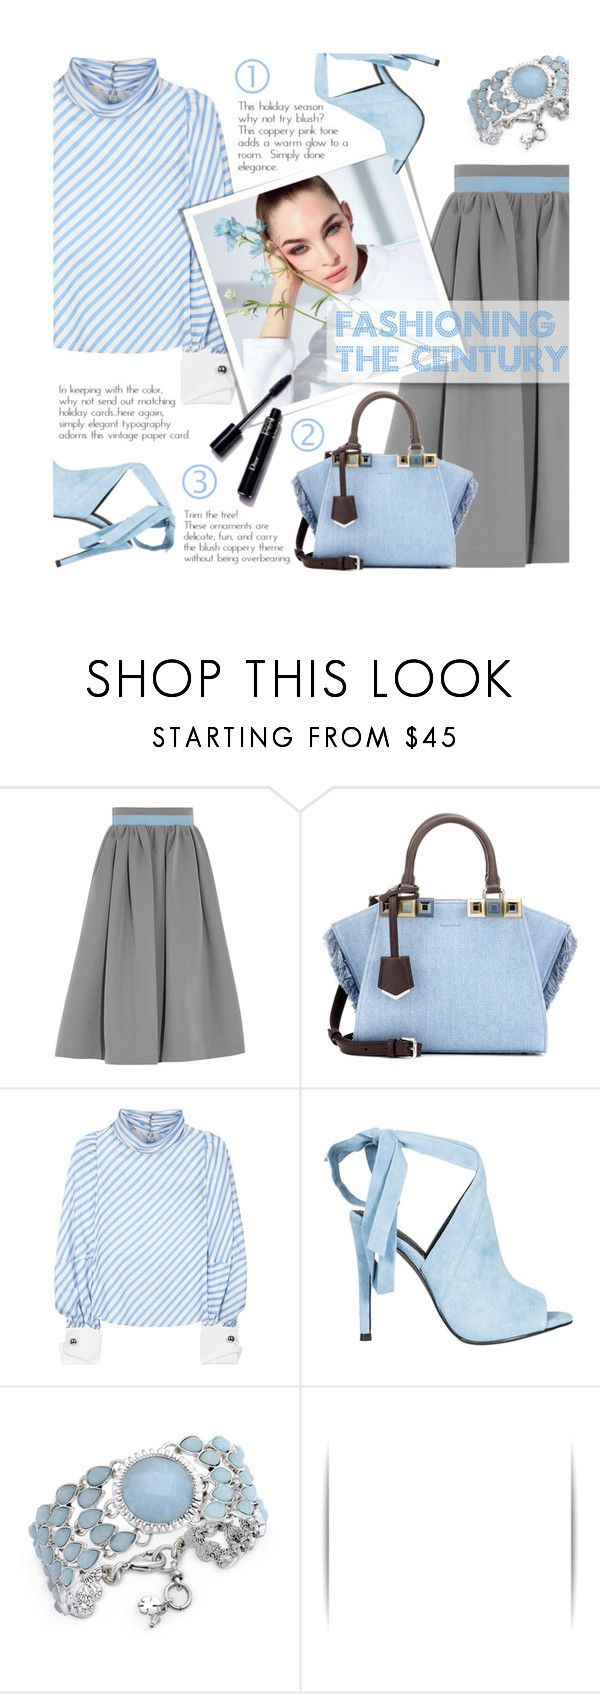 """Fashioning the century"" by xiandrina ❤ liked on Polyvore featuring Preen, Fendi, Monse, Kendall + Kylie and Lucky Brand"